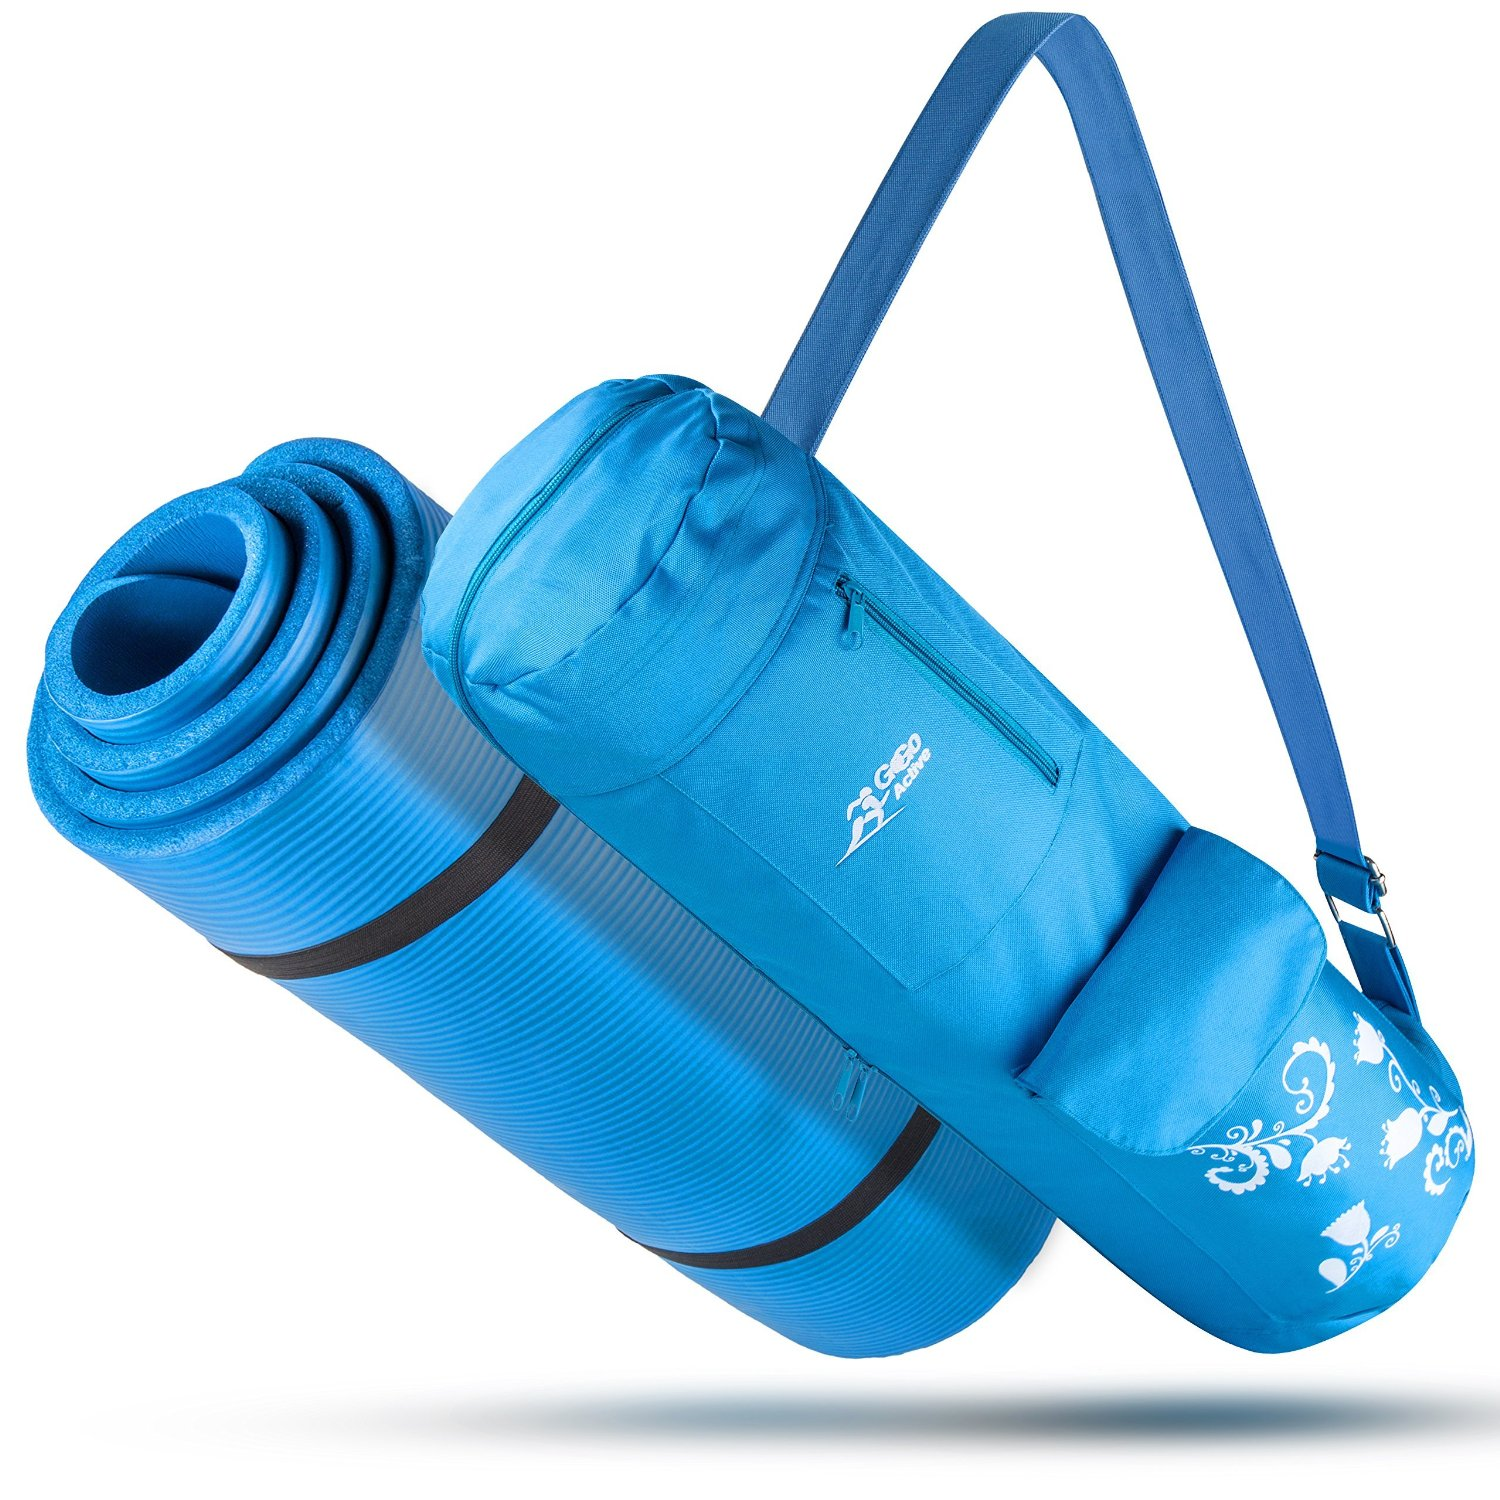 Yoga Mat With Carrying Strap & Matching Bag - Blue